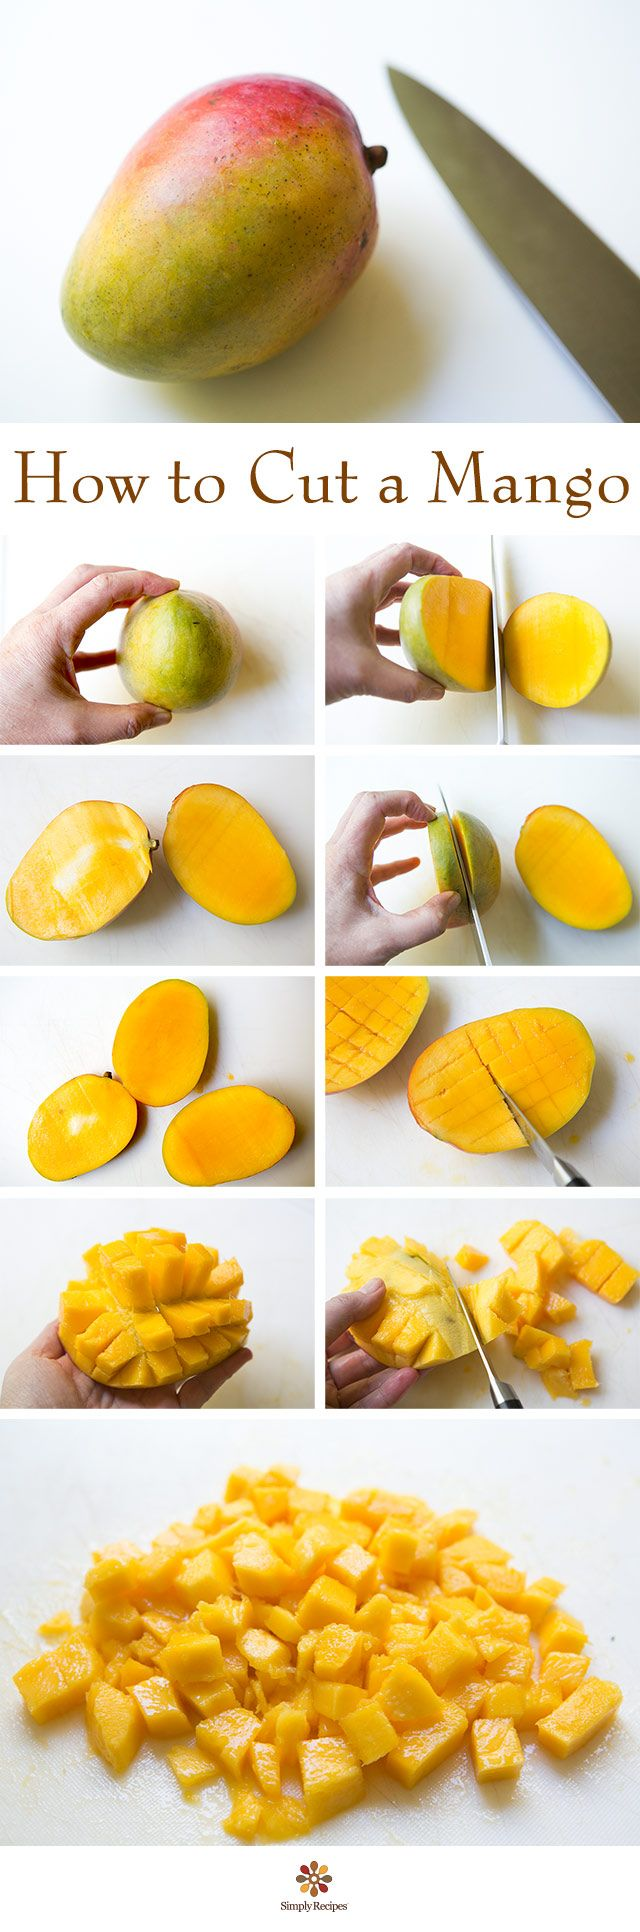 Cutting a mango is easy! Here are step-by-step instructions on how to cut a mango quickly and easily with minimal mess. On SimplyRecipes.com